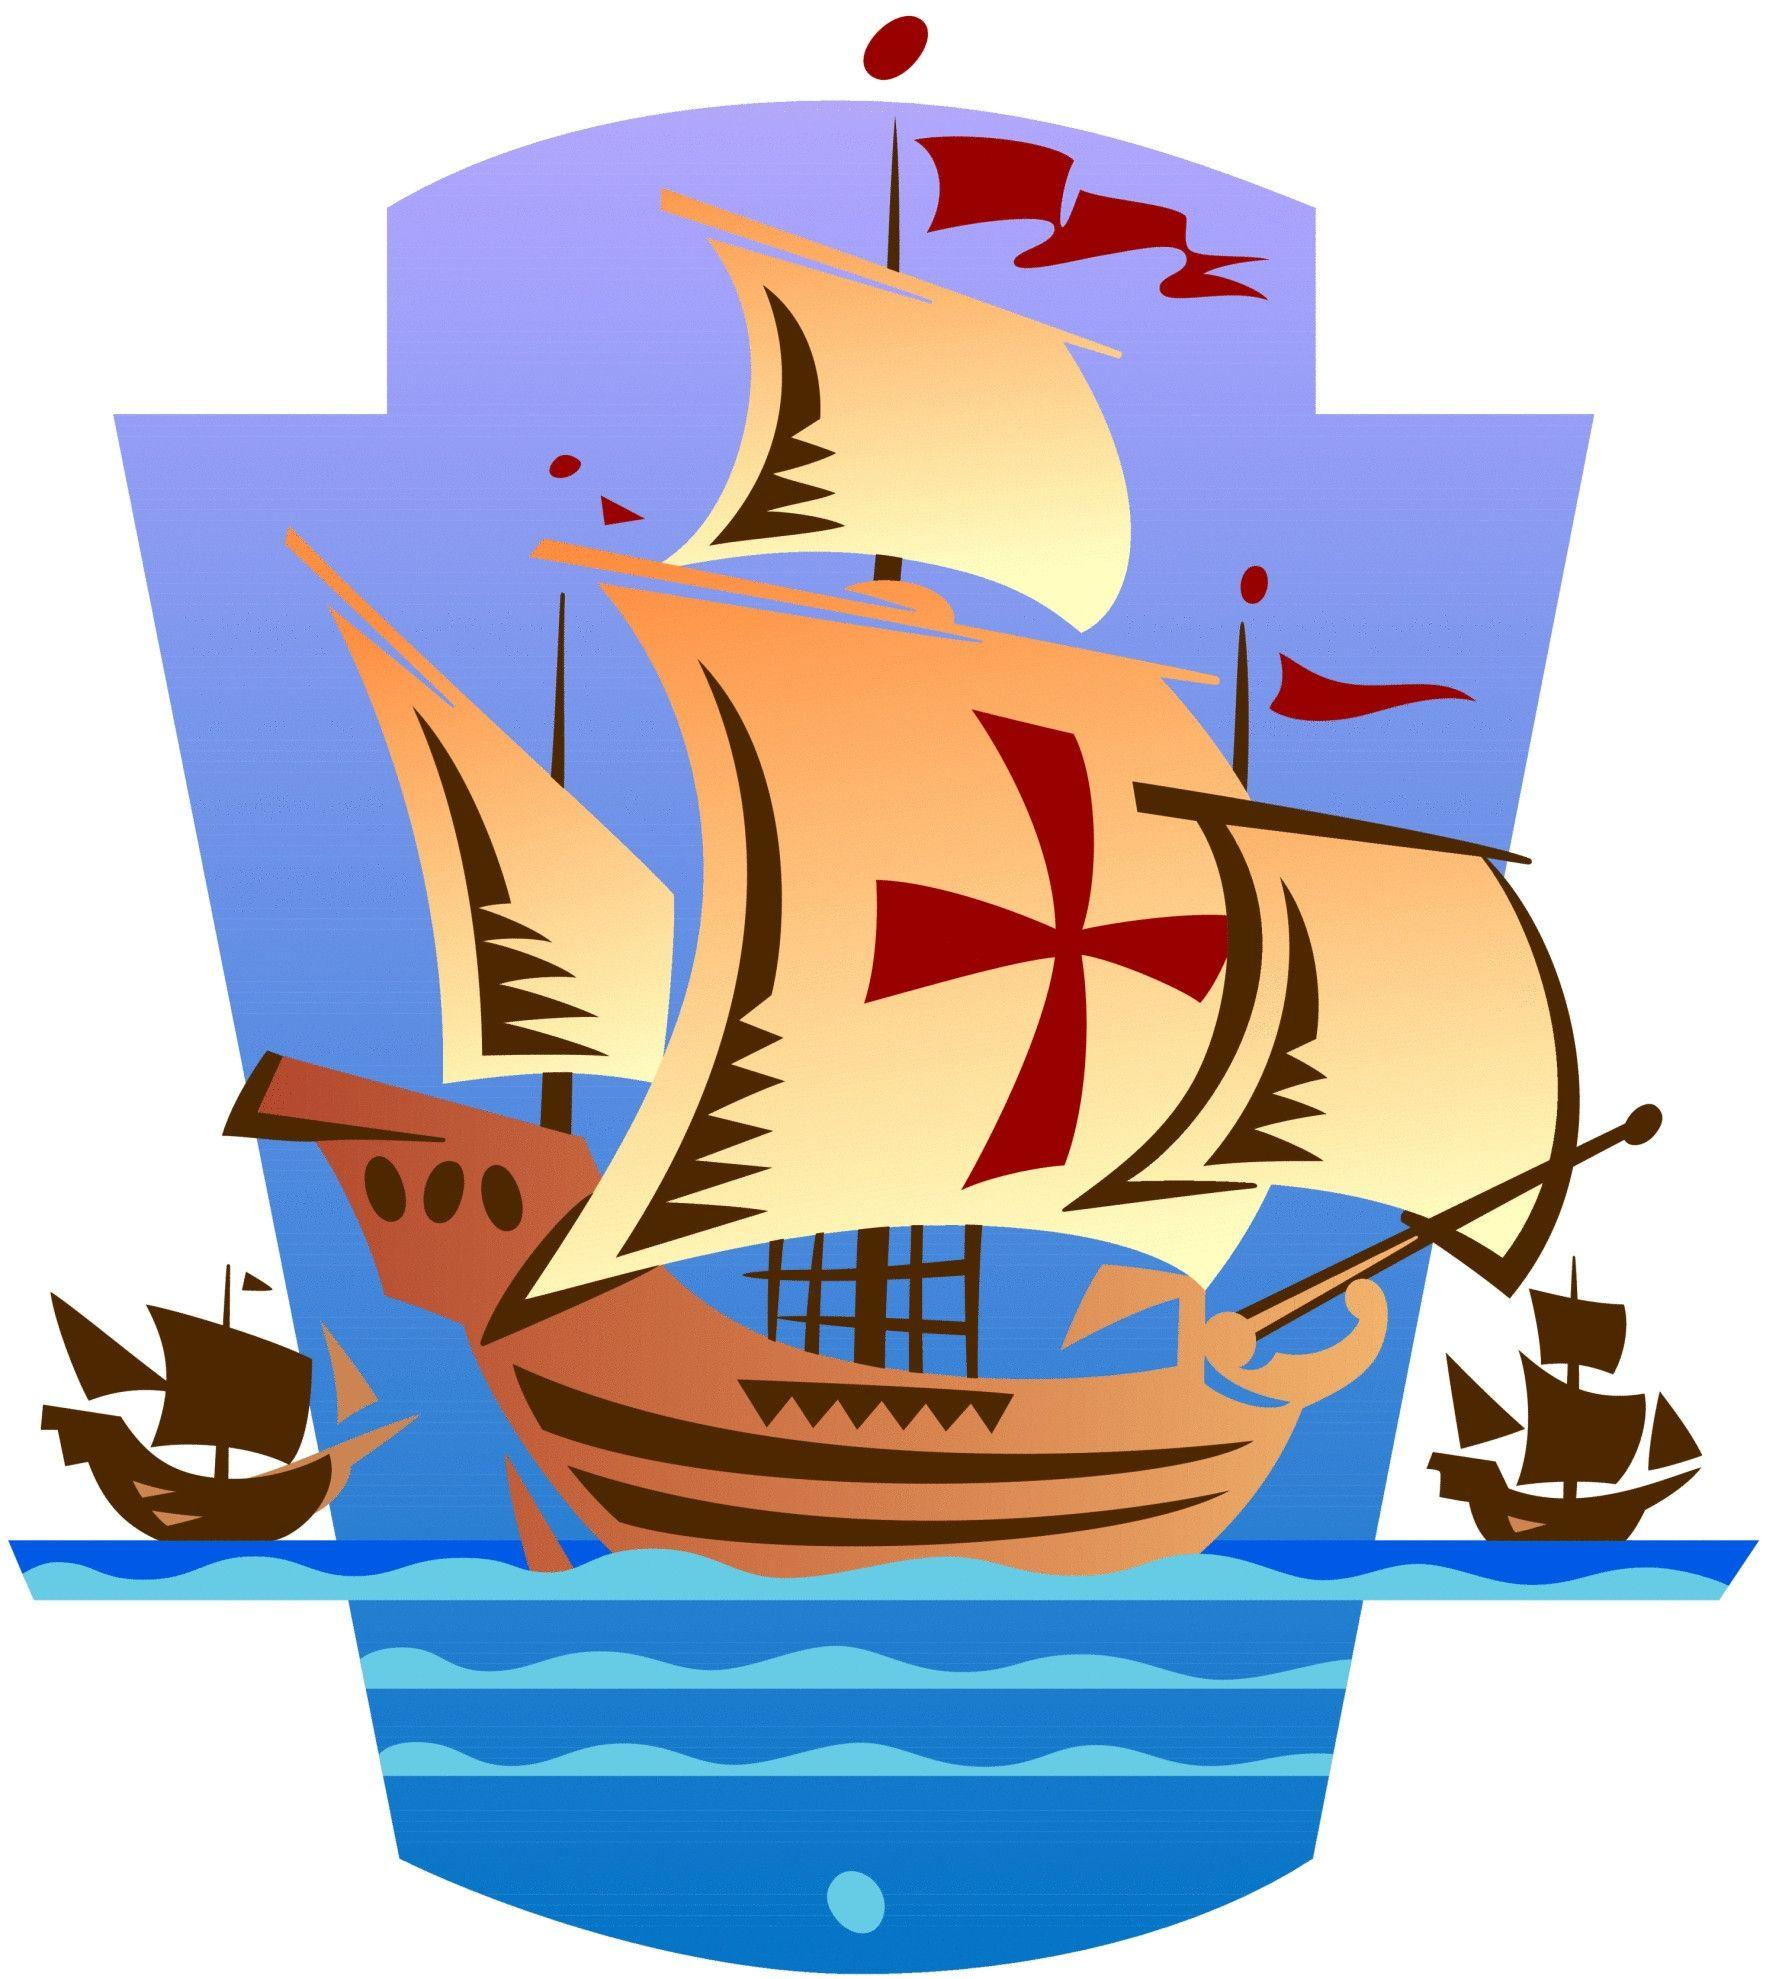 Columbus Day 2014 Parade, Sales, Clipart, Image, Recipes